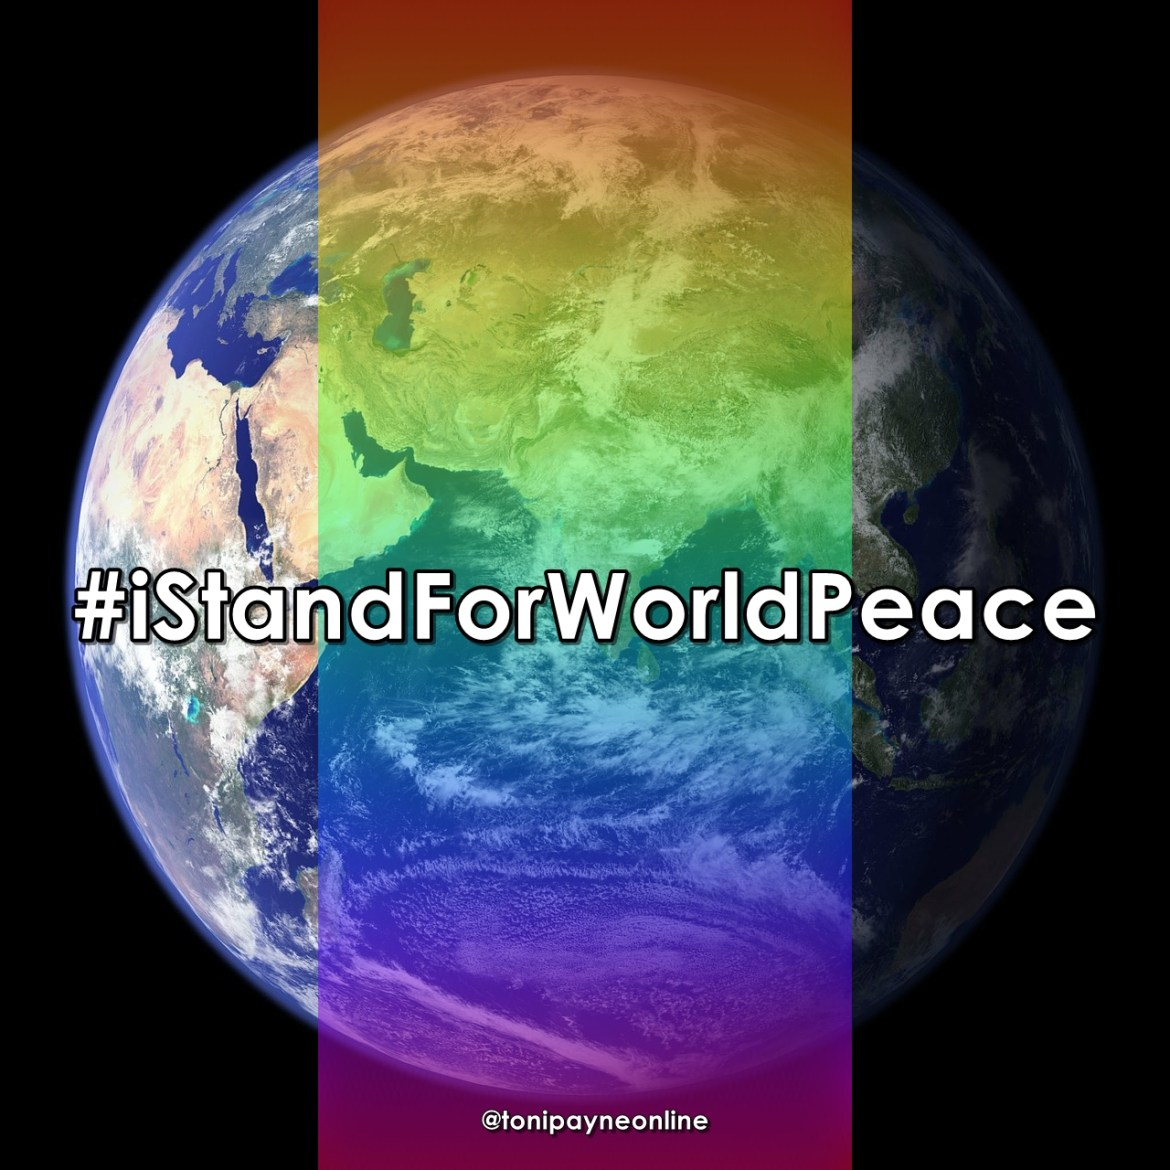 i stand for world peace